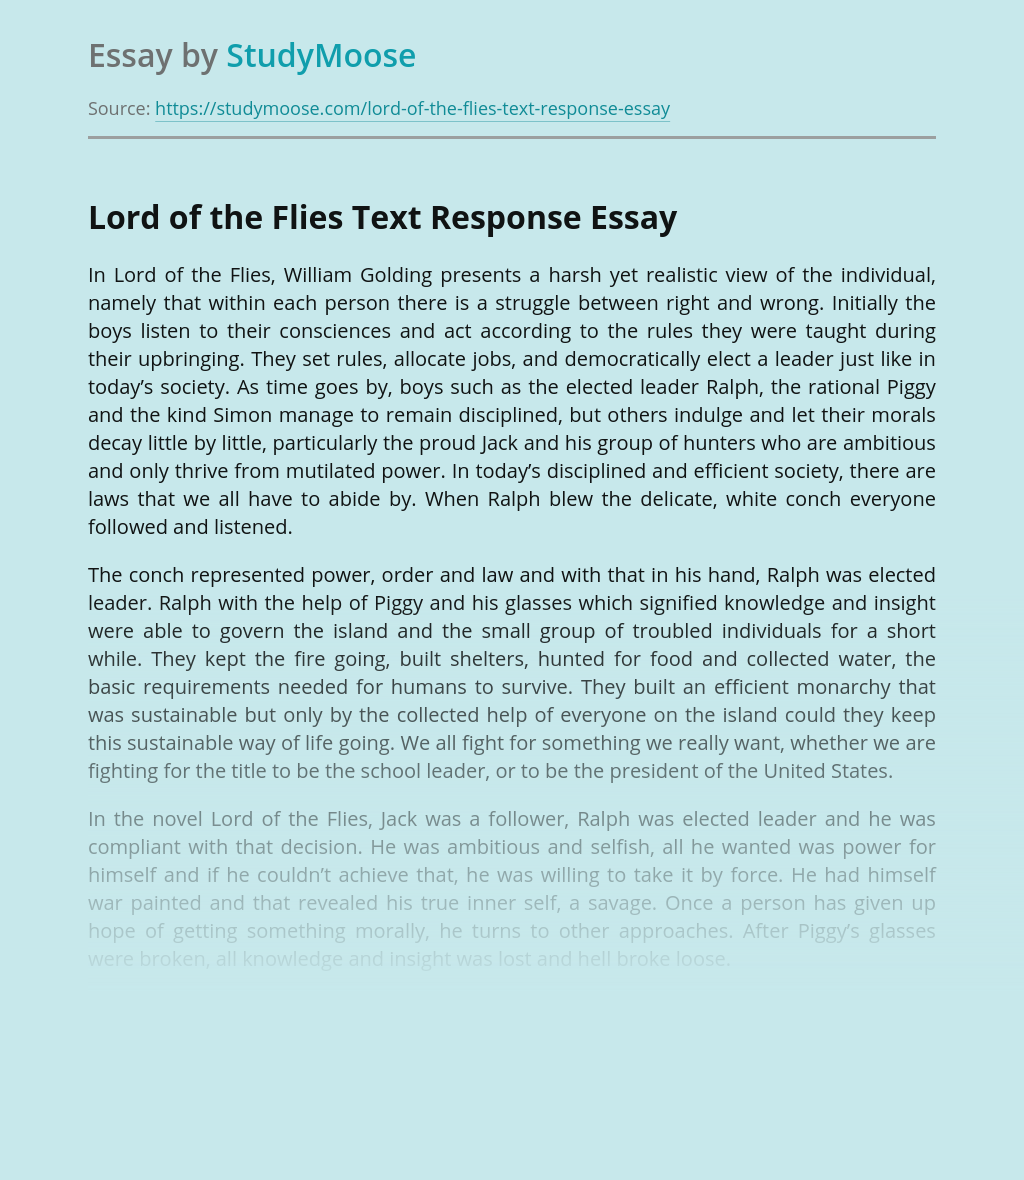 Lord of the Flies Text Response